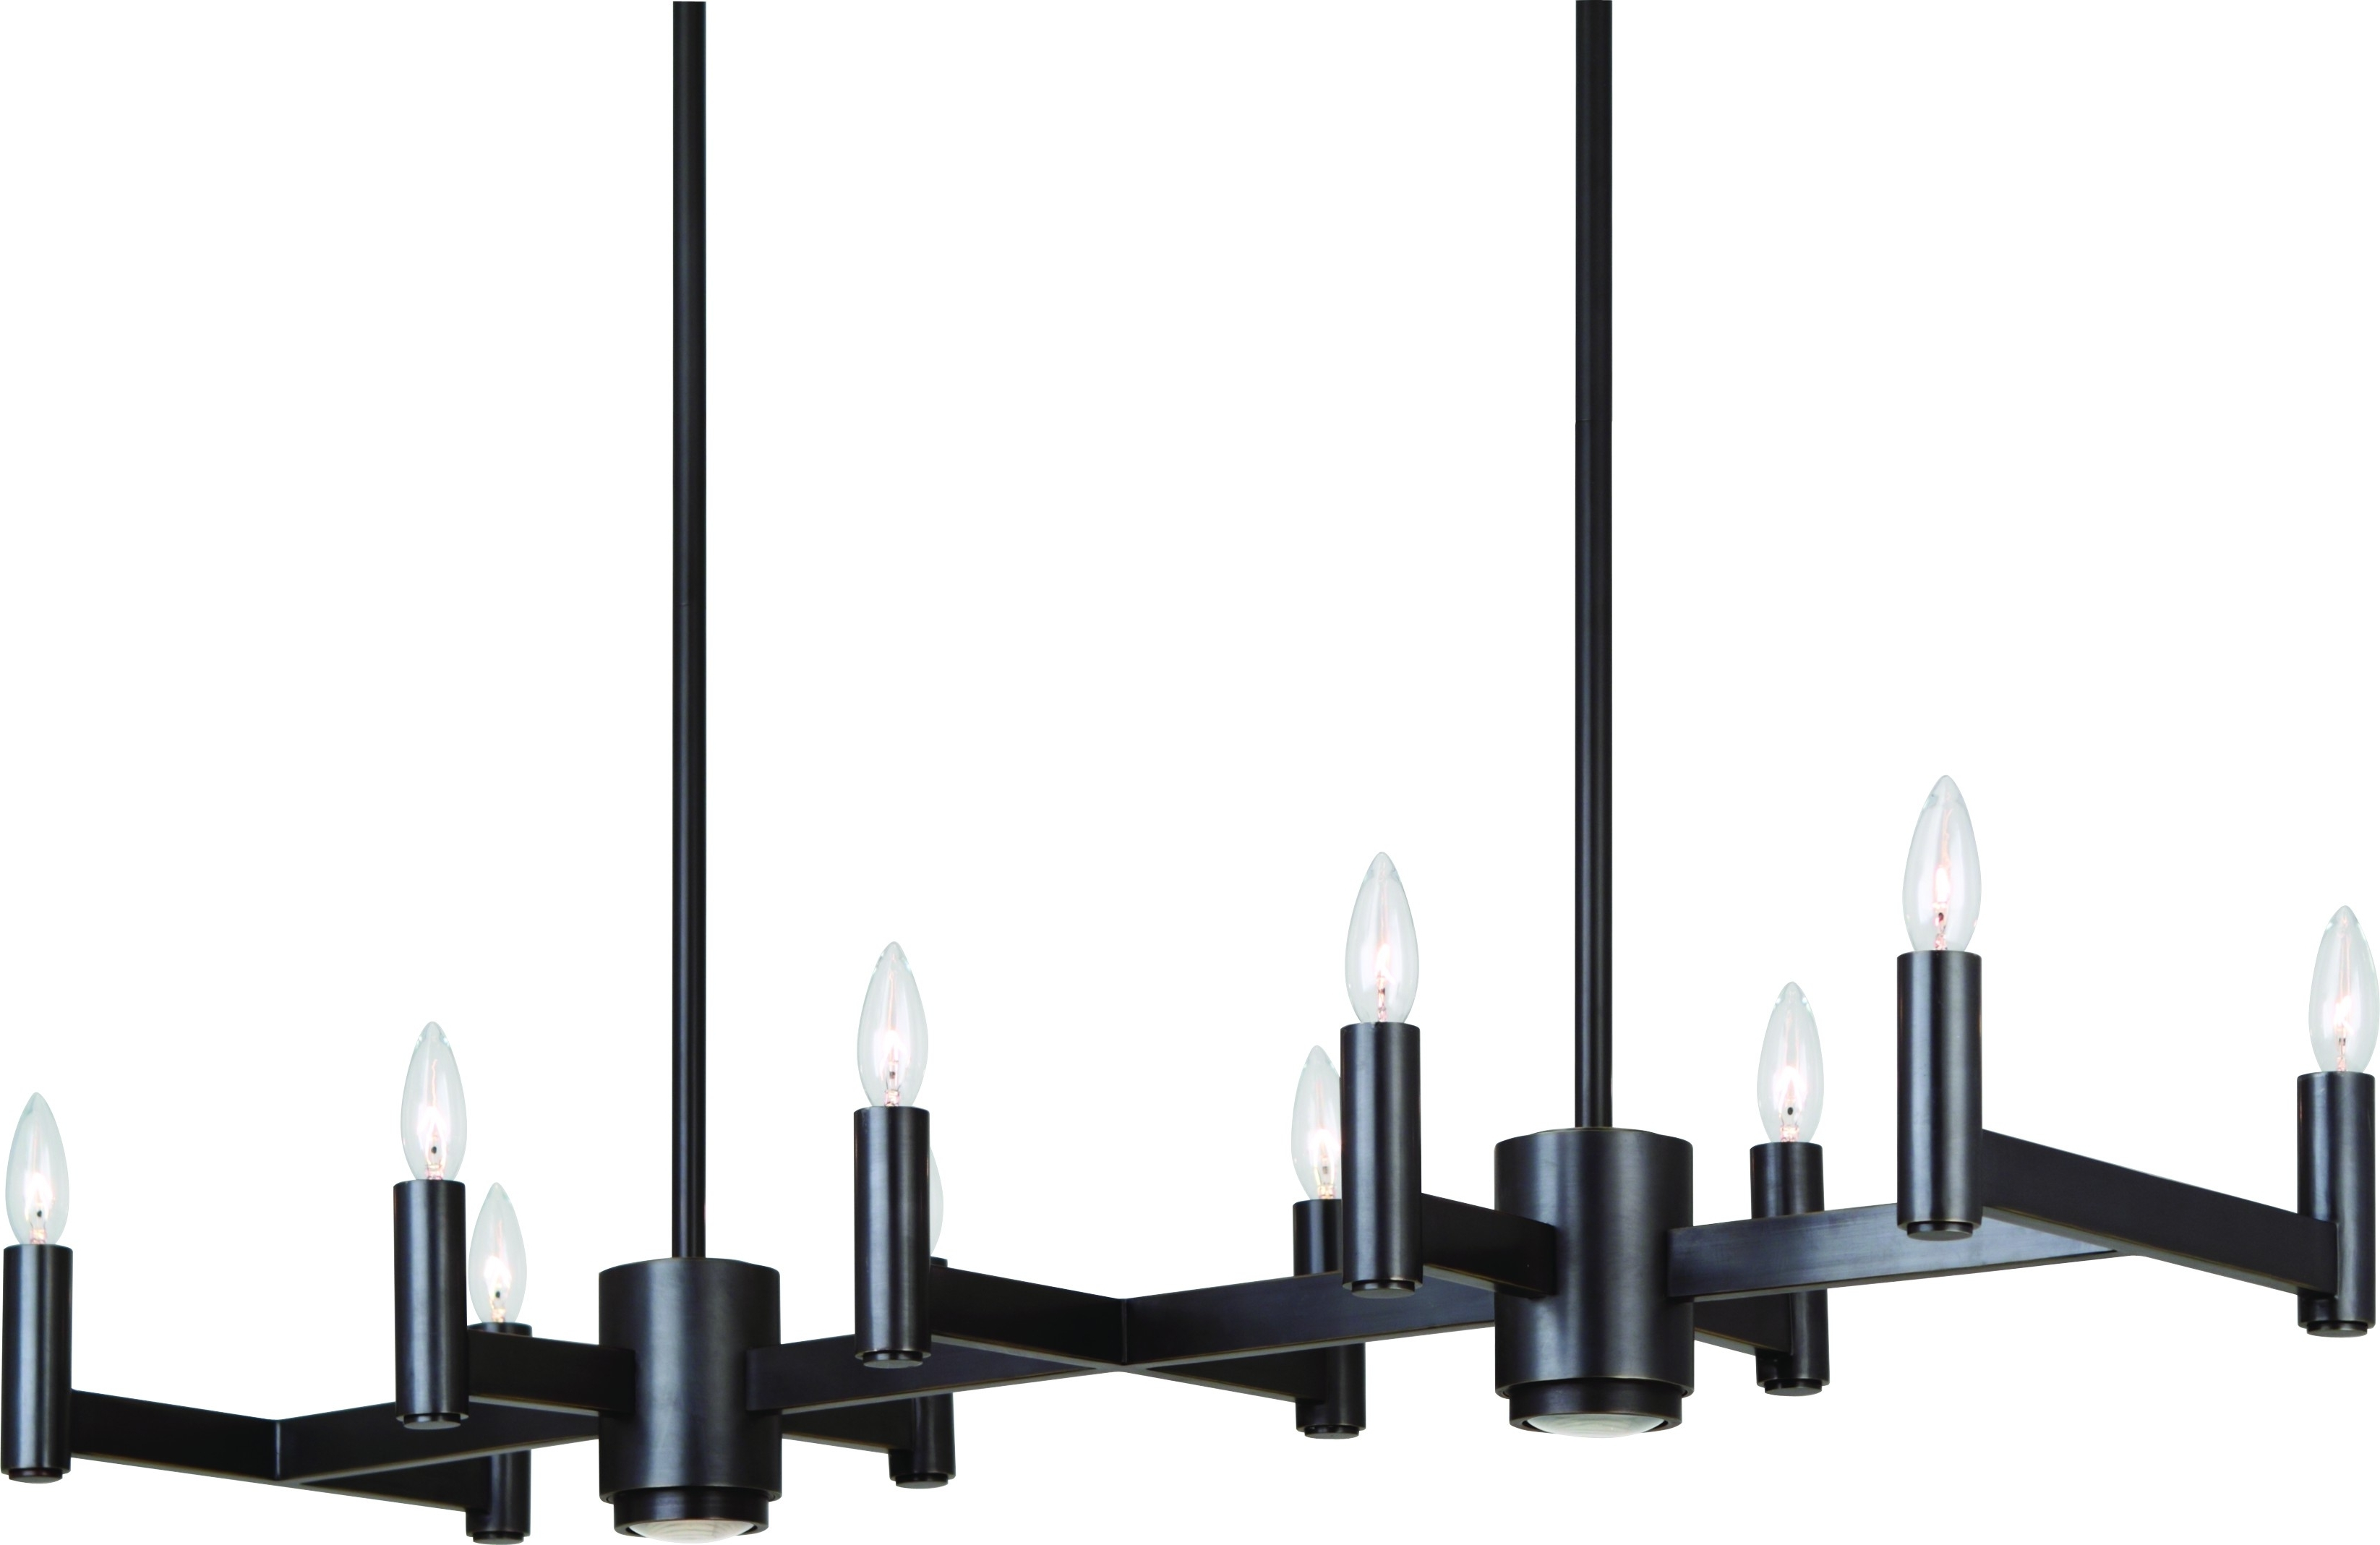 Home Design : Good Looking Black Modern Chandelier Brilliant Design Regarding Most Recent Black Contemporary Chandelier (View 8 of 15)